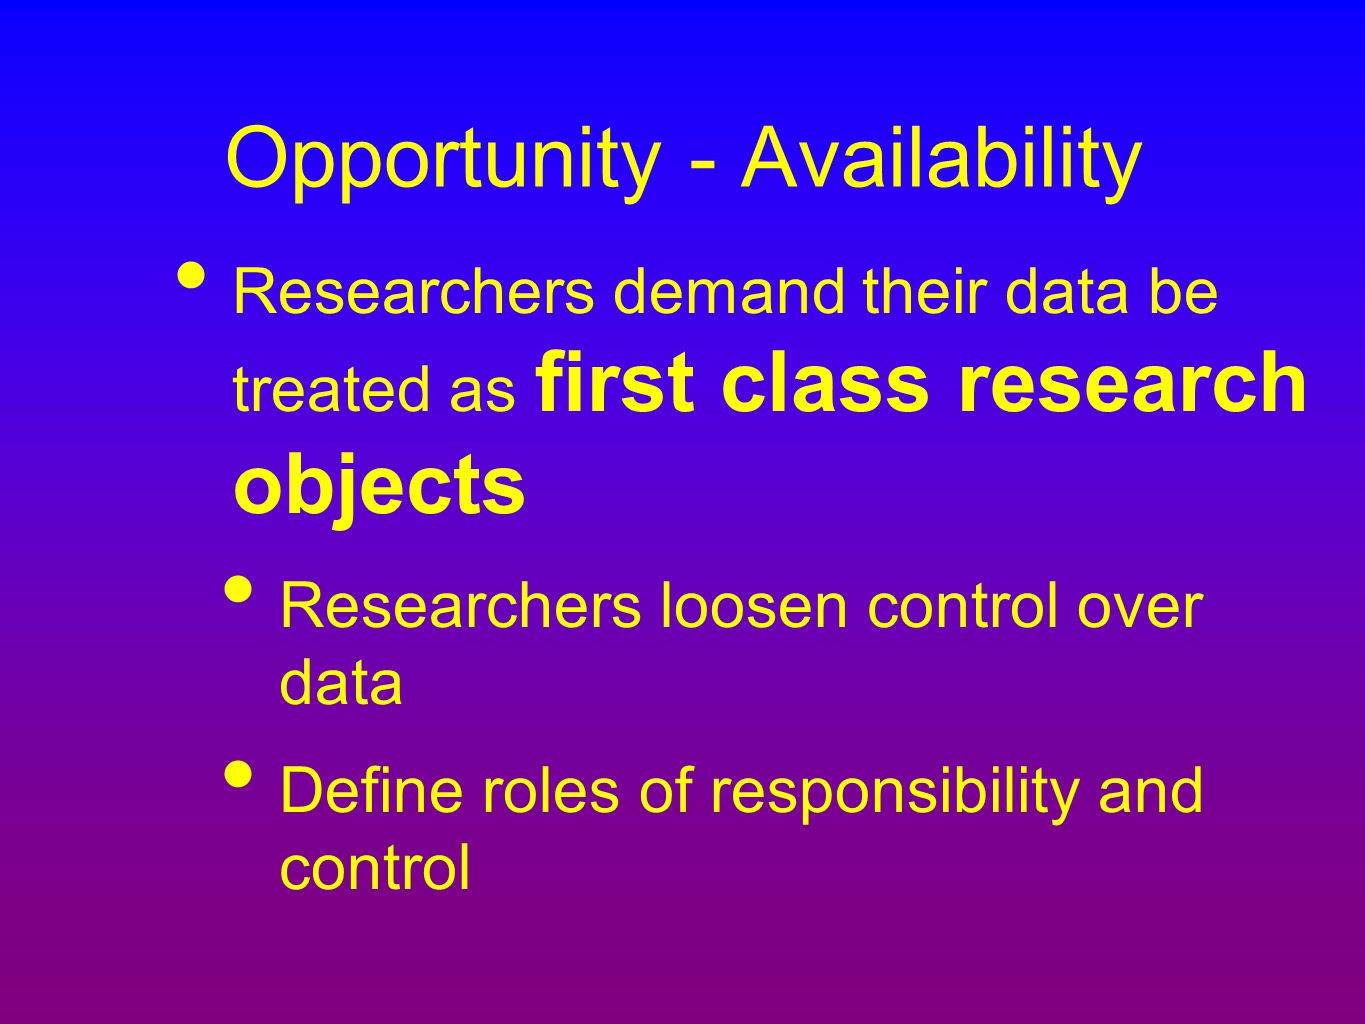 Opportunity - Availability Researchers demand their data be treated as first class research objects Researchers loosen control over data Define roles